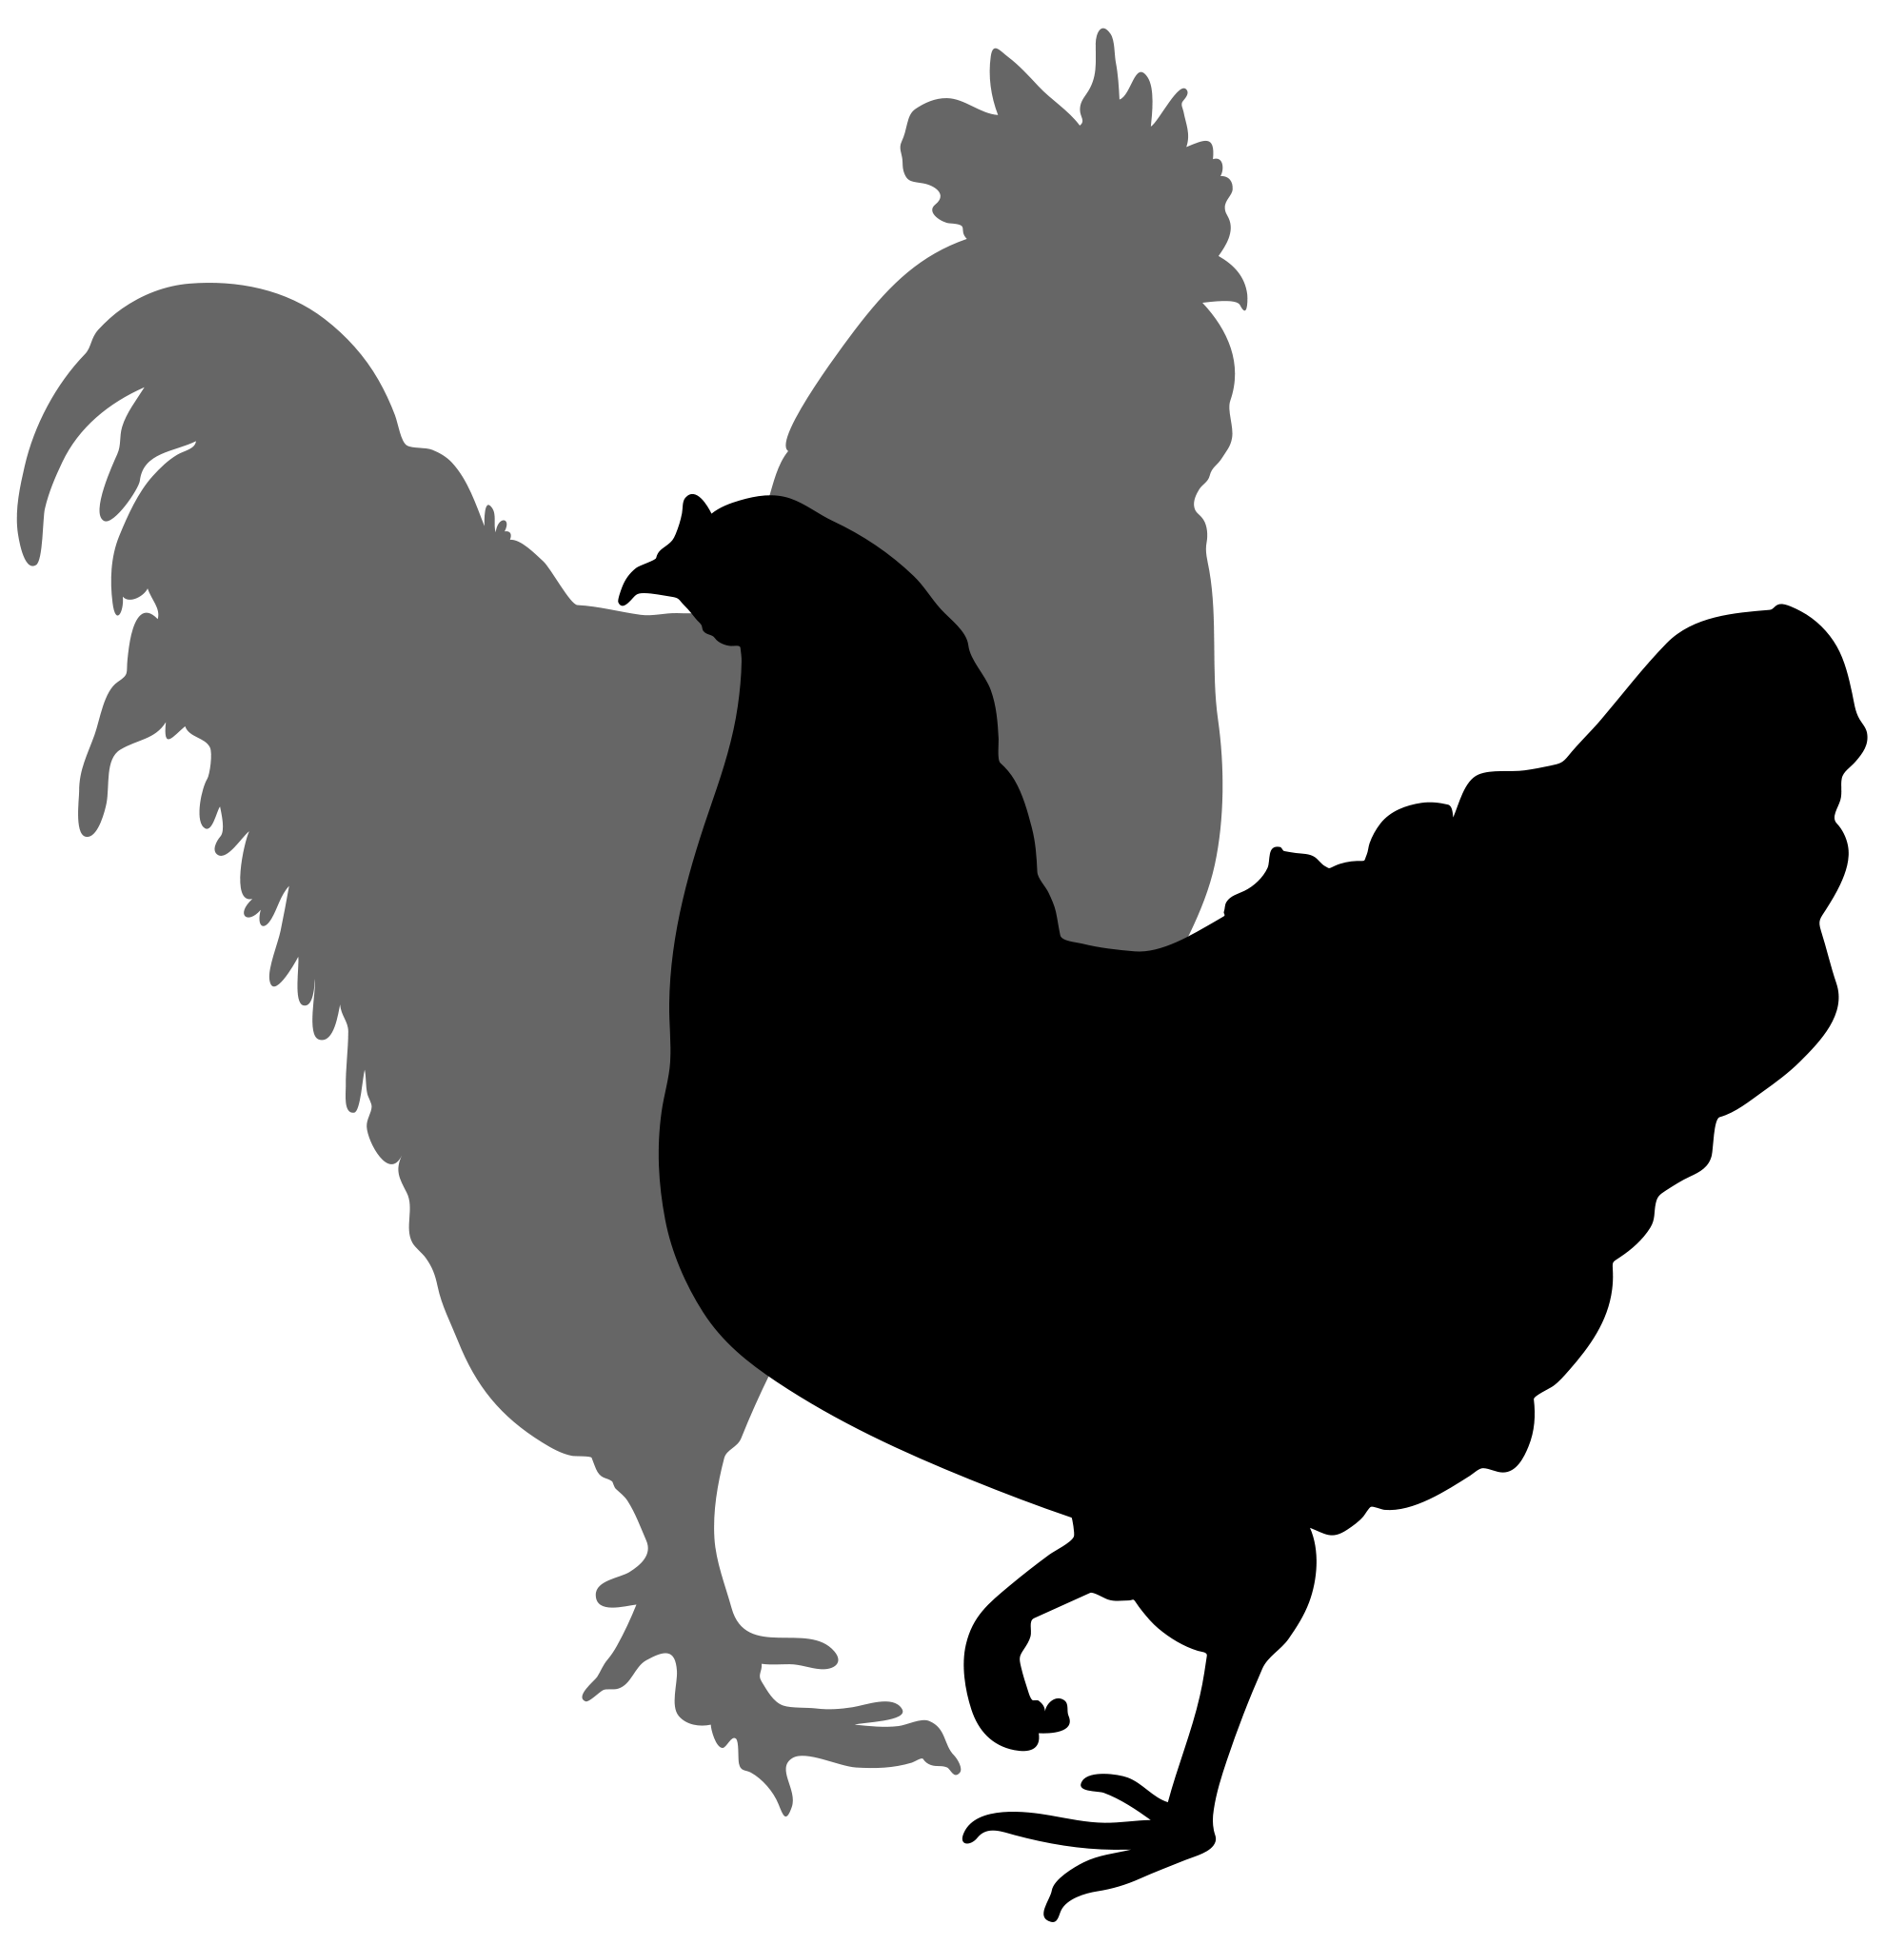 Nest clipart hen nest. Rooster silhouette images at